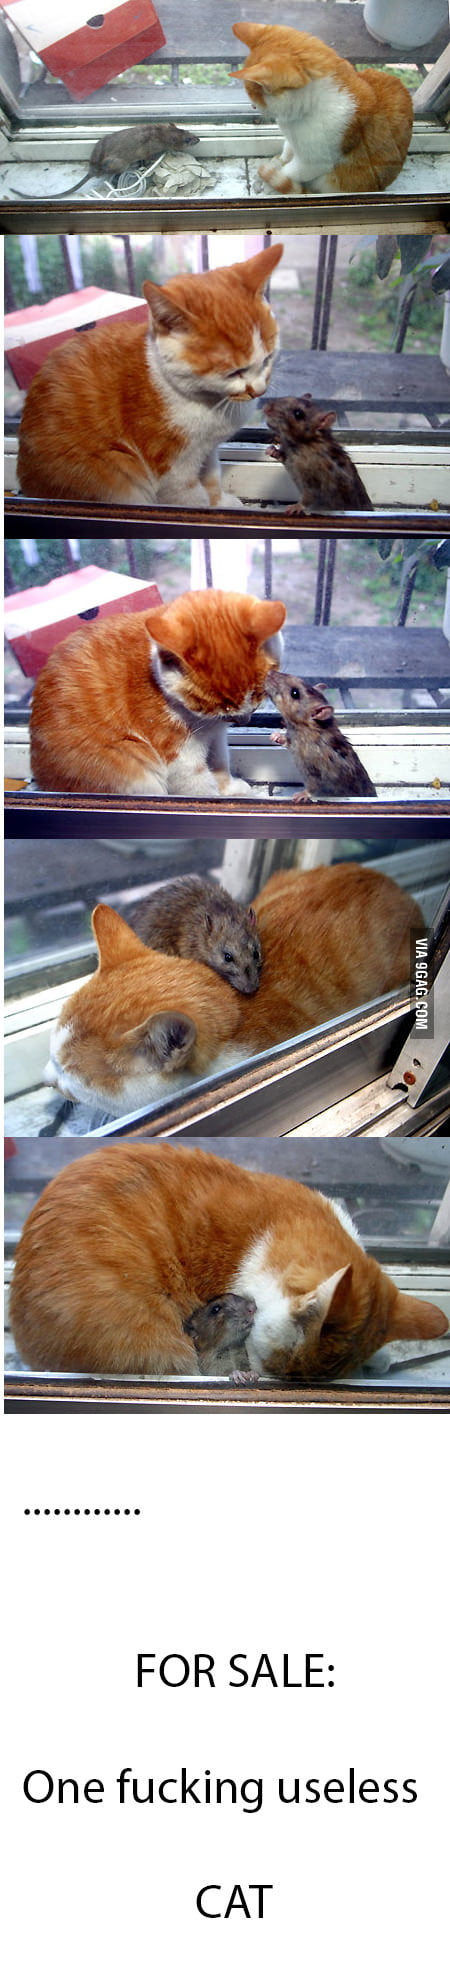 Real life Tom & Jerry. Sort of